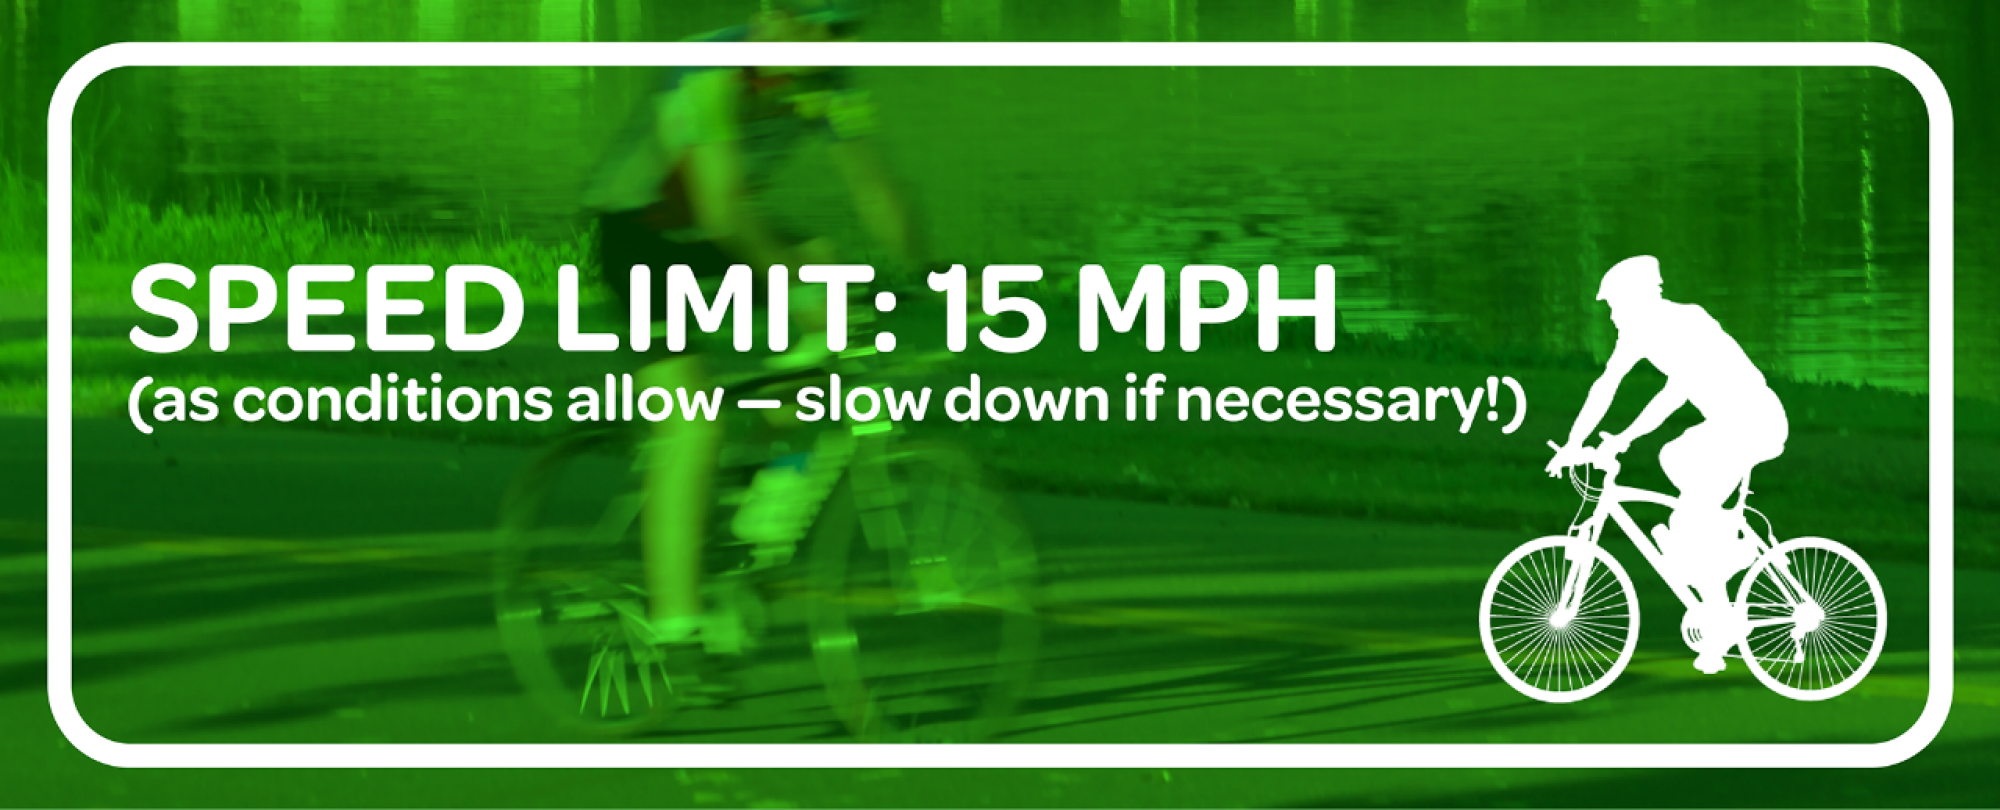 trail speed limit is 15 MPH - slow down if necessary